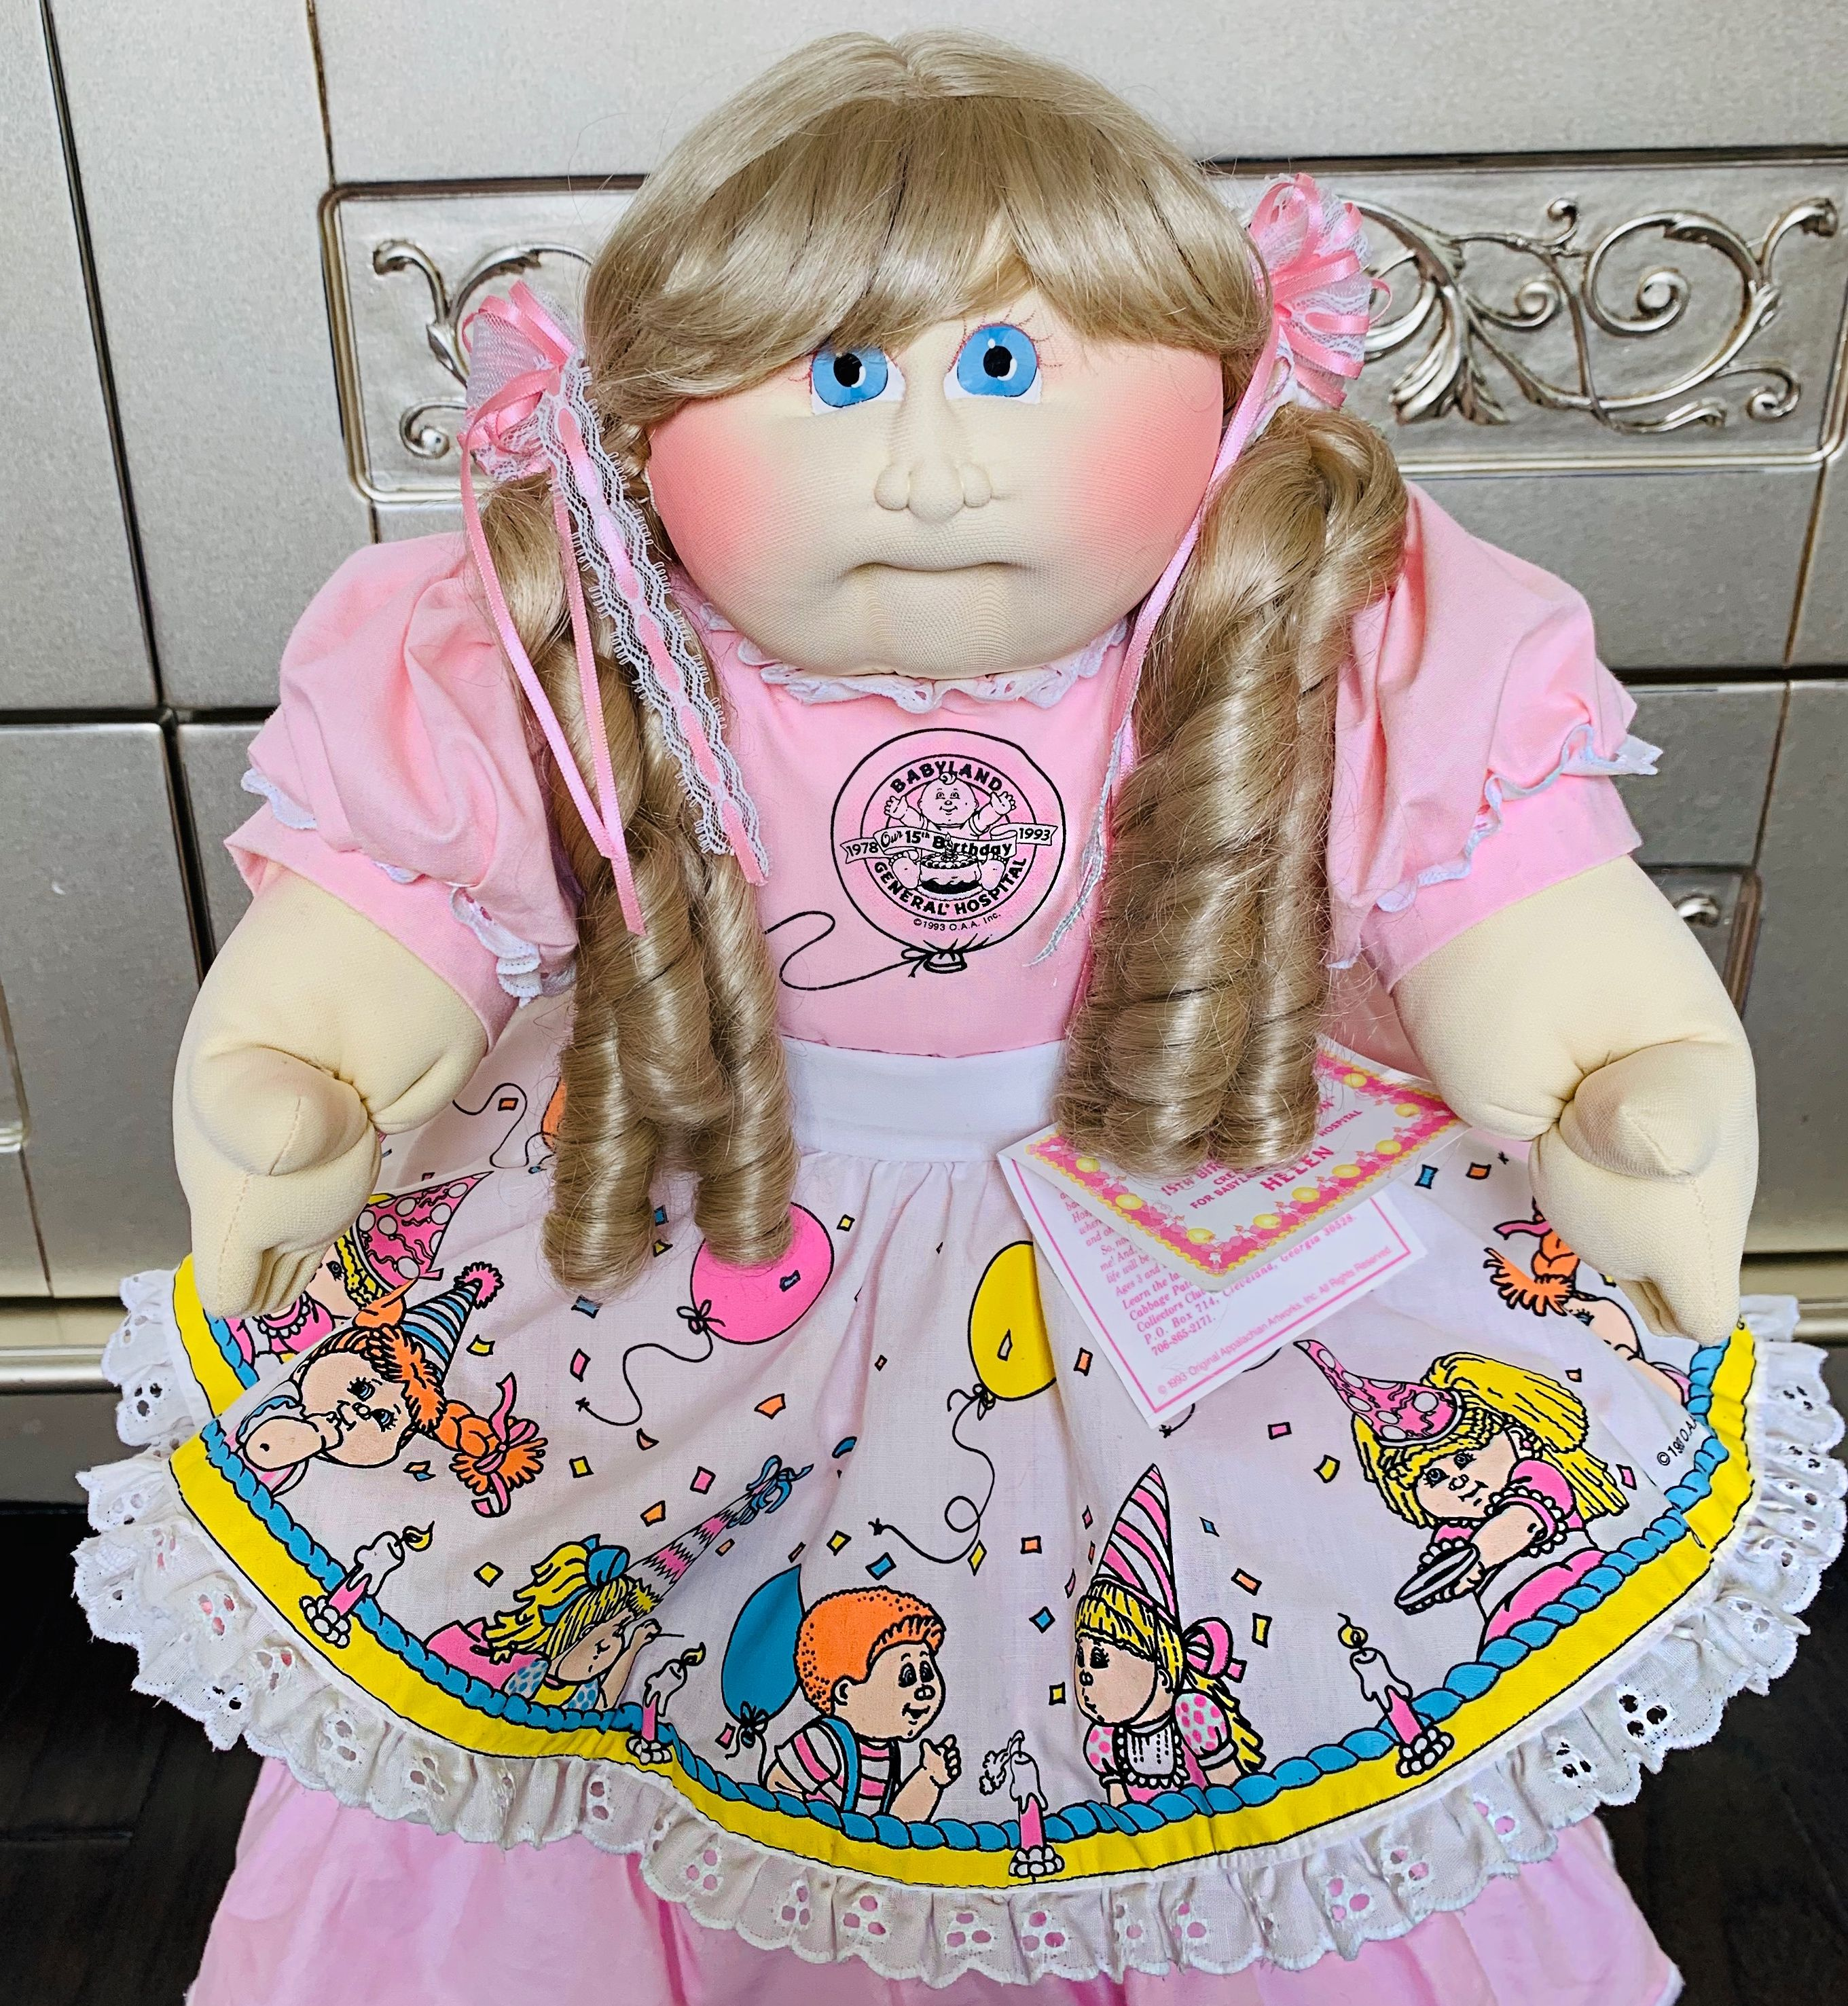 15th Anniversary Cabbage Patch Babies Cabbage Patch Kids Dolls Cabbage Patch Kids